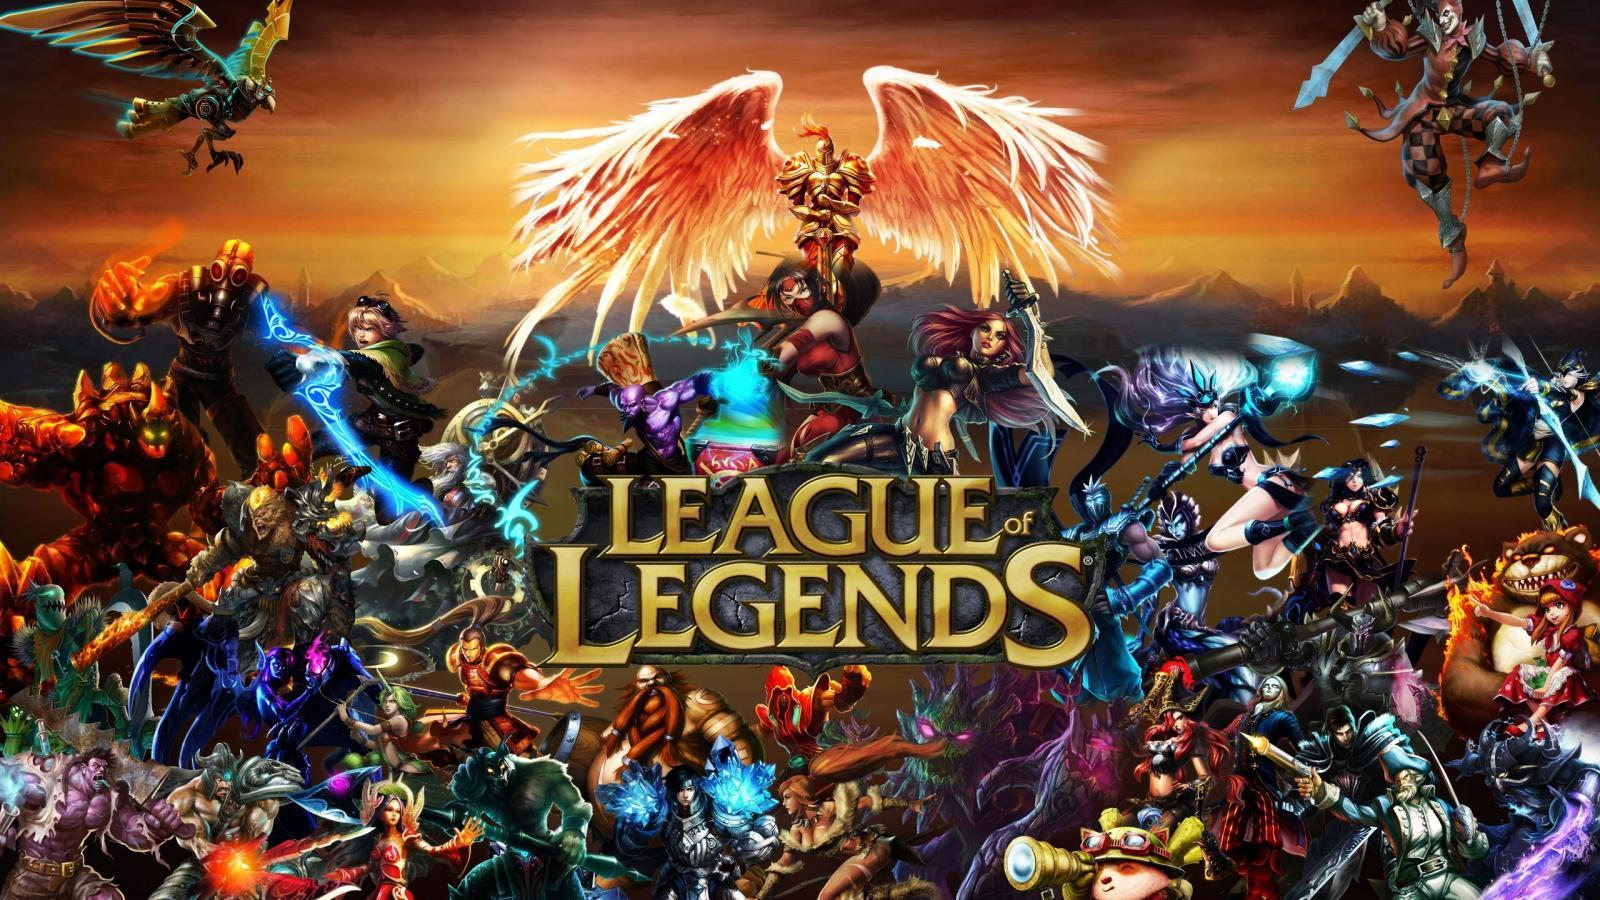 League Of Legends Looking To Take On Mobile Legends?